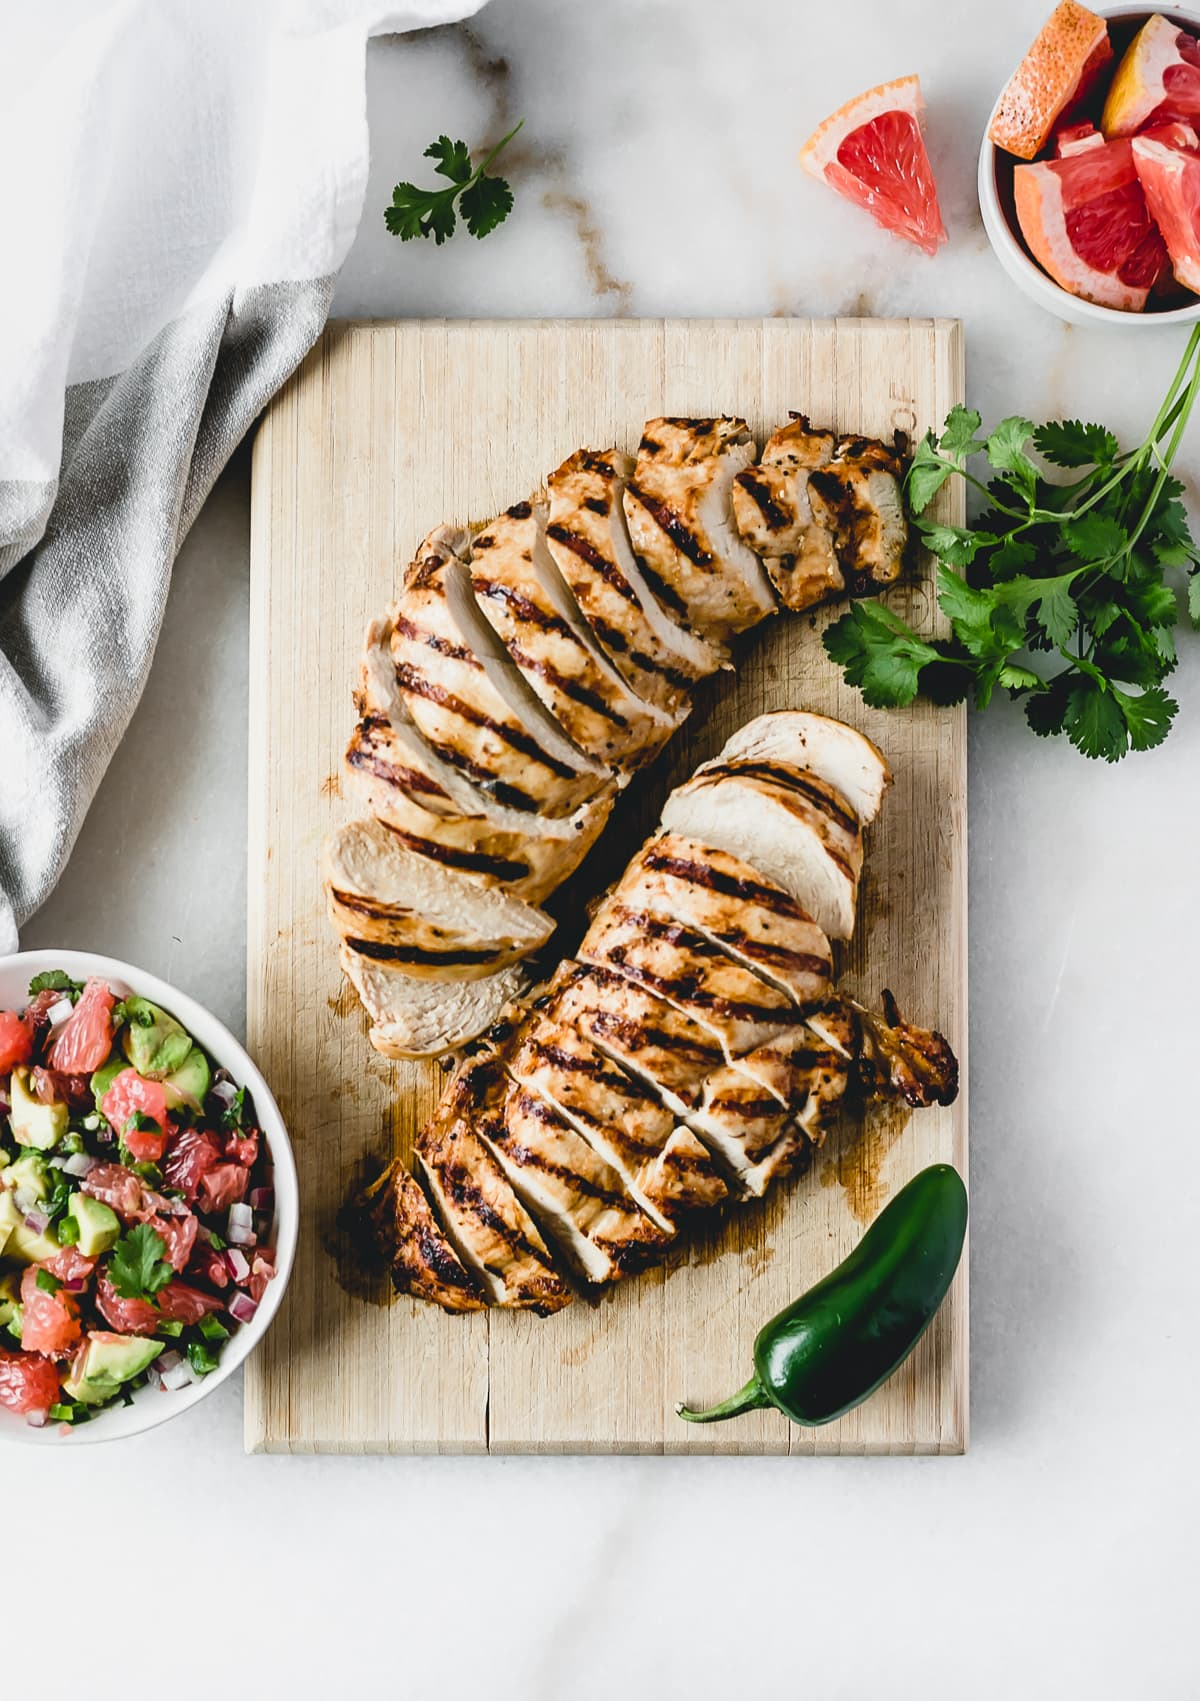 Grapefruit Jalapeno Chicken is the perfect healthy meal to transition from winter into spring. Full of flavor and ready in under an hour, this chicken will become a staple in your house! #glutenfree #dairyfree #grapefruitrecipes #chickenrecipes #jalapenochickenrecipes #maindish #healthymaindish